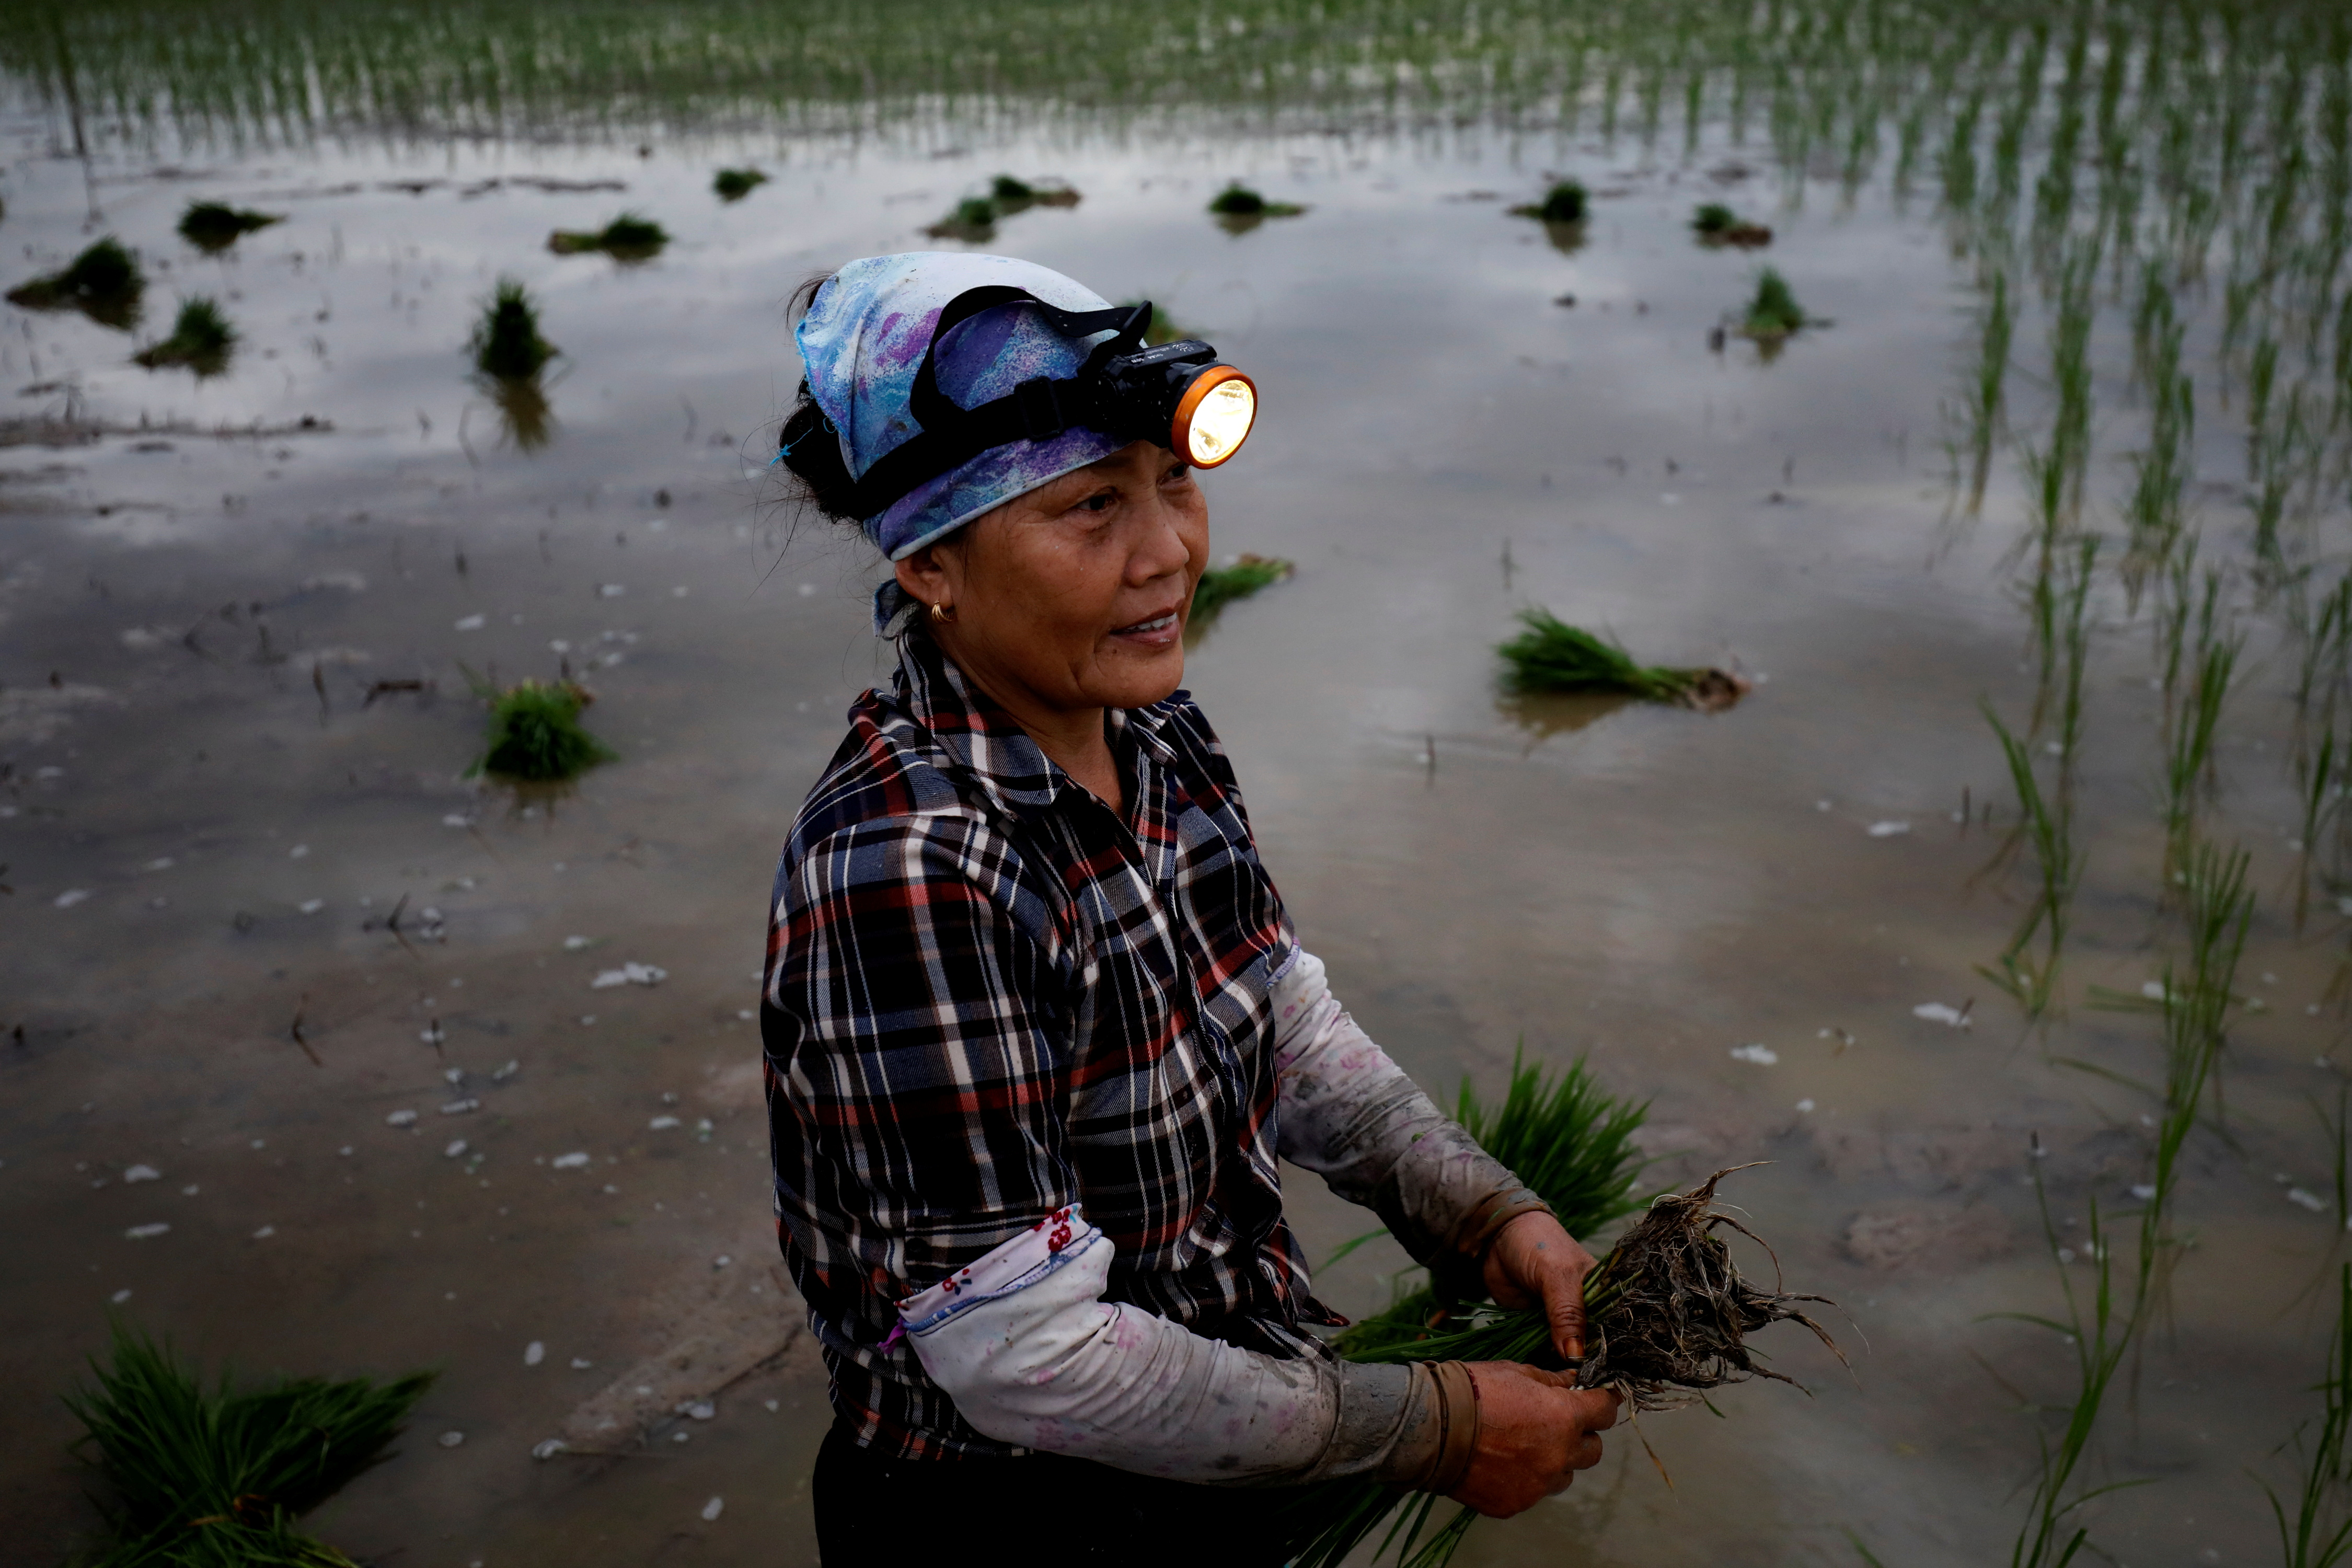 A farmer plants rice on a paddy field during early morning to avoid the heat in Hanoi, Vietnam June 25, 2020. REUTERS/Kham/File Photo